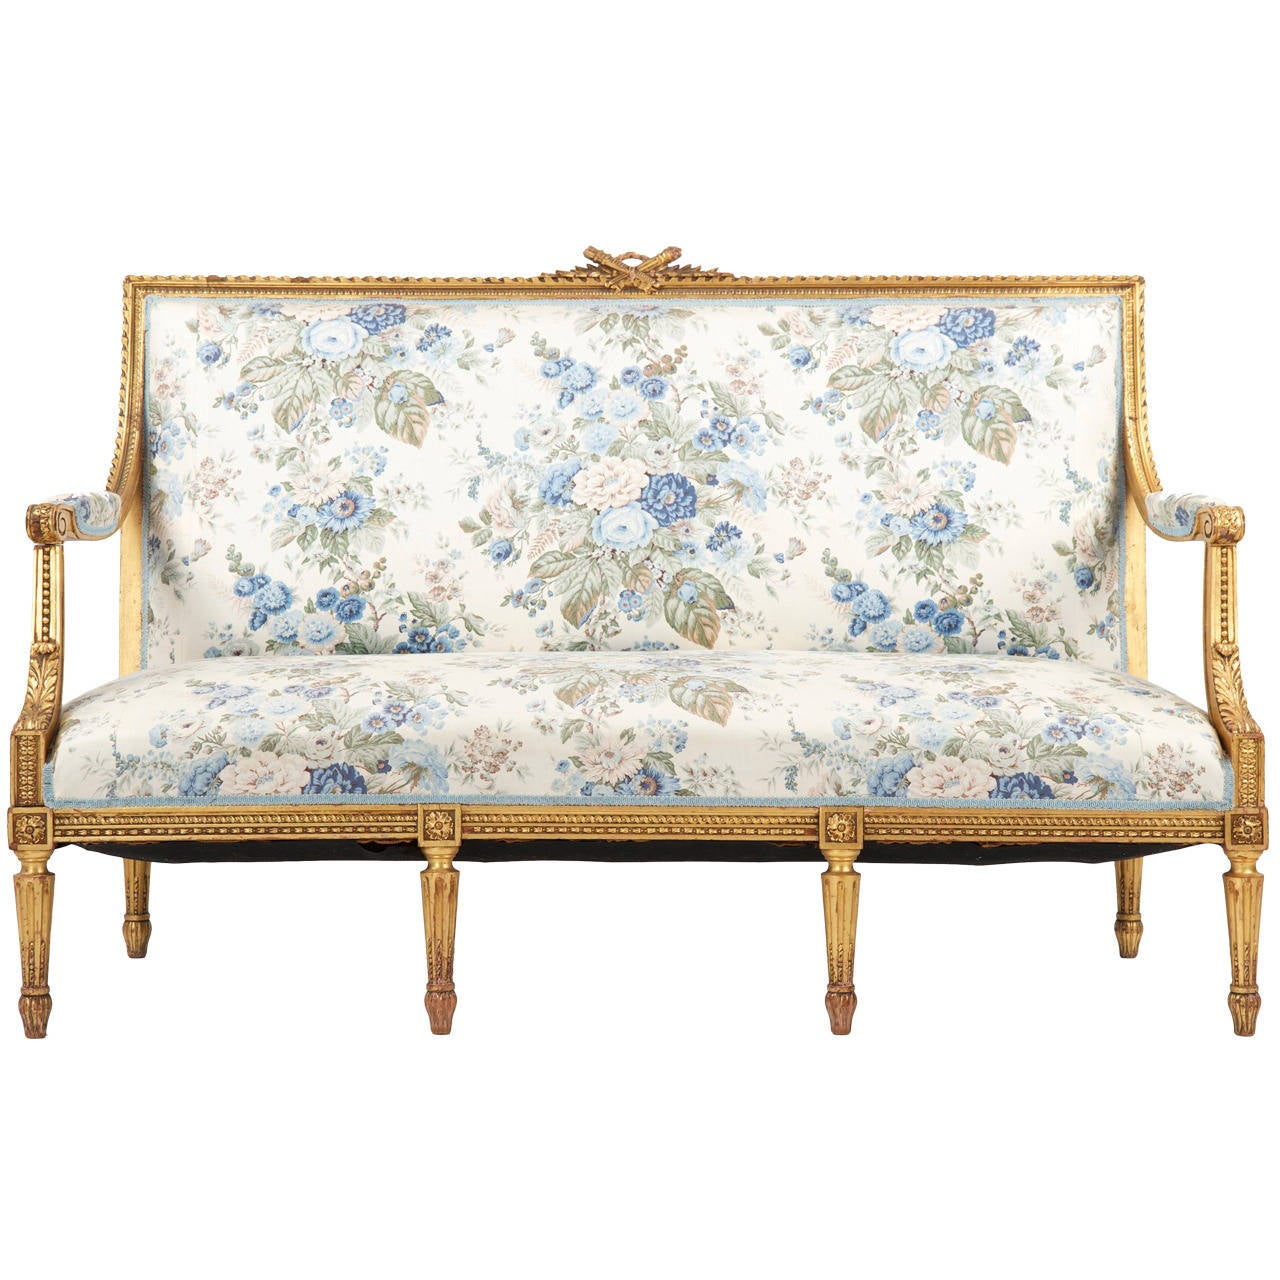 French louis xvi style giltwood antique settee sofa canape c 1900 at 1stdibs - Canape style vintage ...